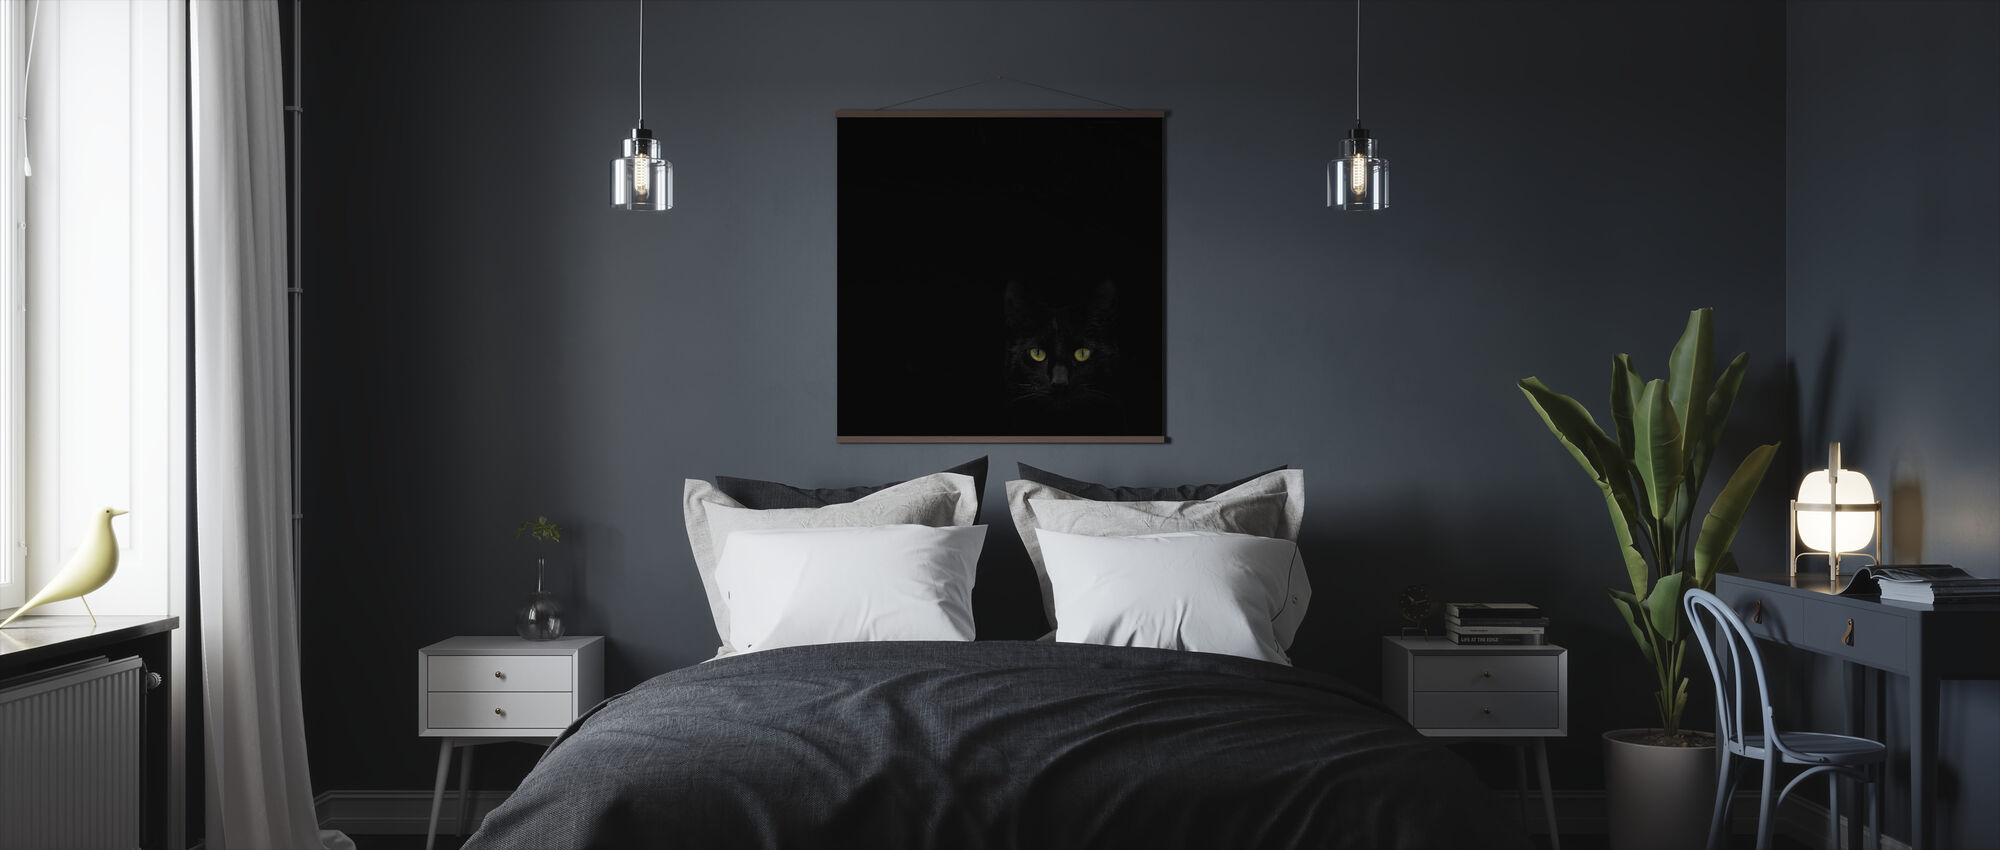 Watching You From The Dark Side - Poster - Bedroom